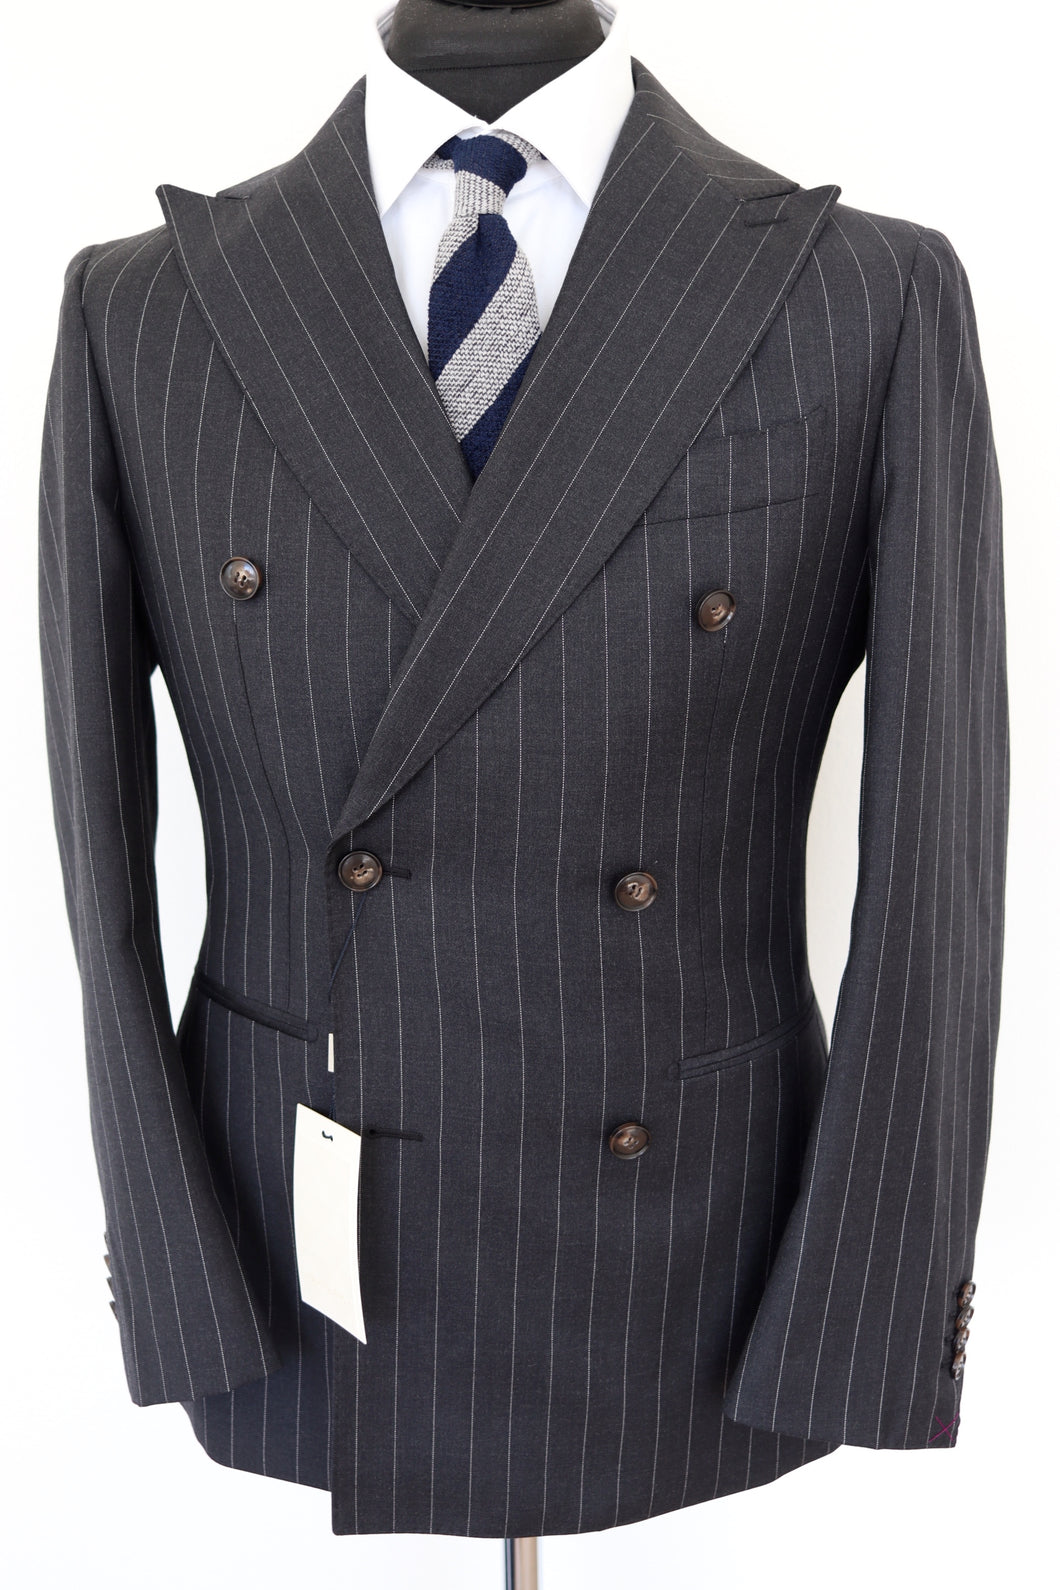 NWT Suitsupply Havana Dark Gray Pinstripe 100% Wool Suit - Size 36S and 44R